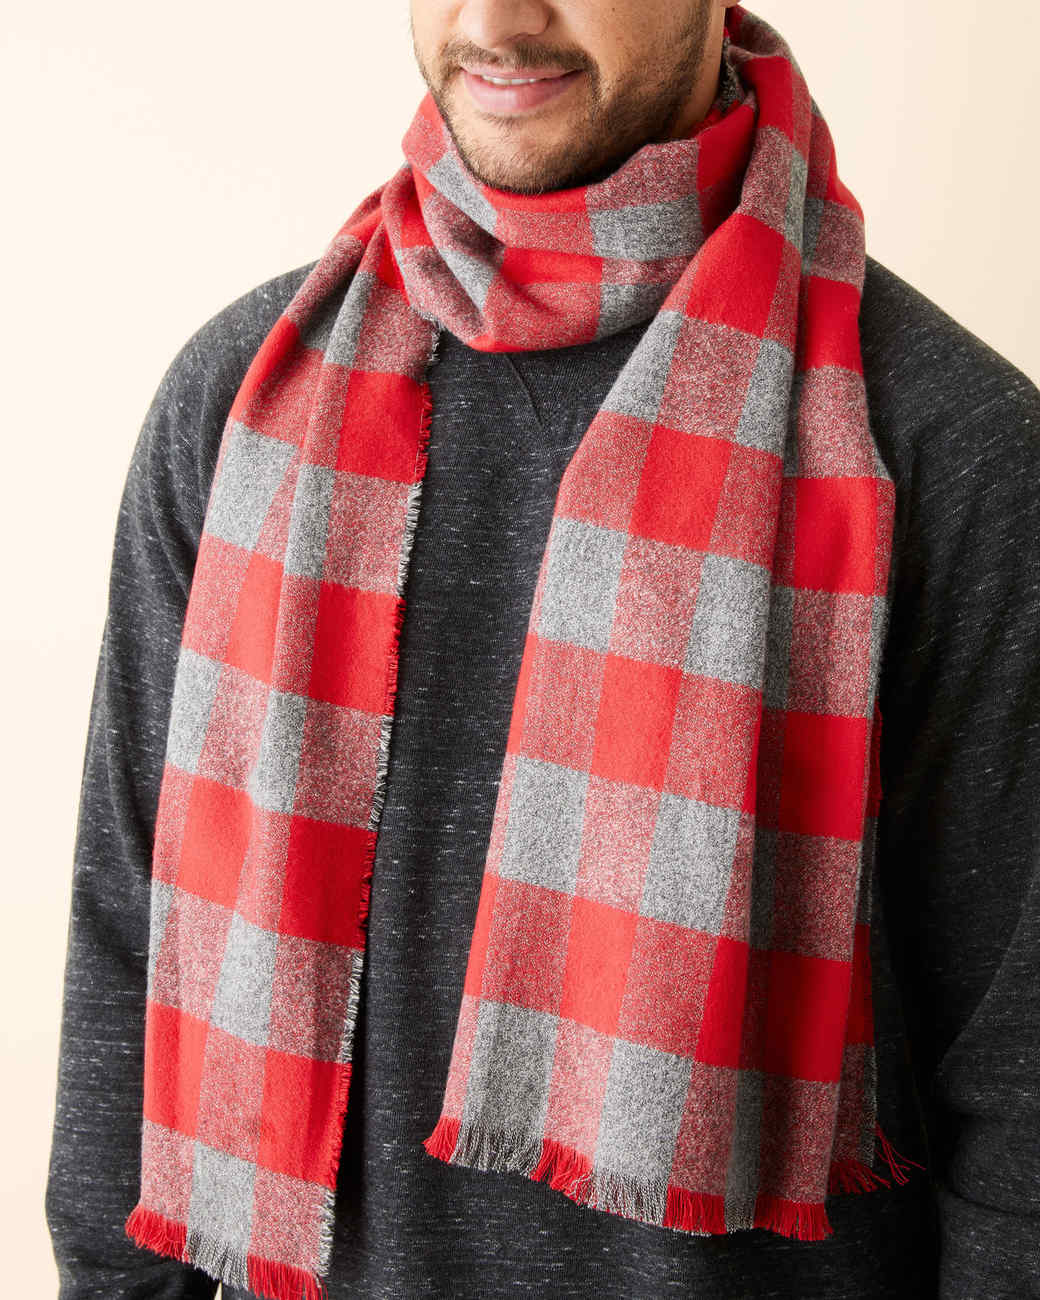 ma wearing red and gray no-sew plaid scarf